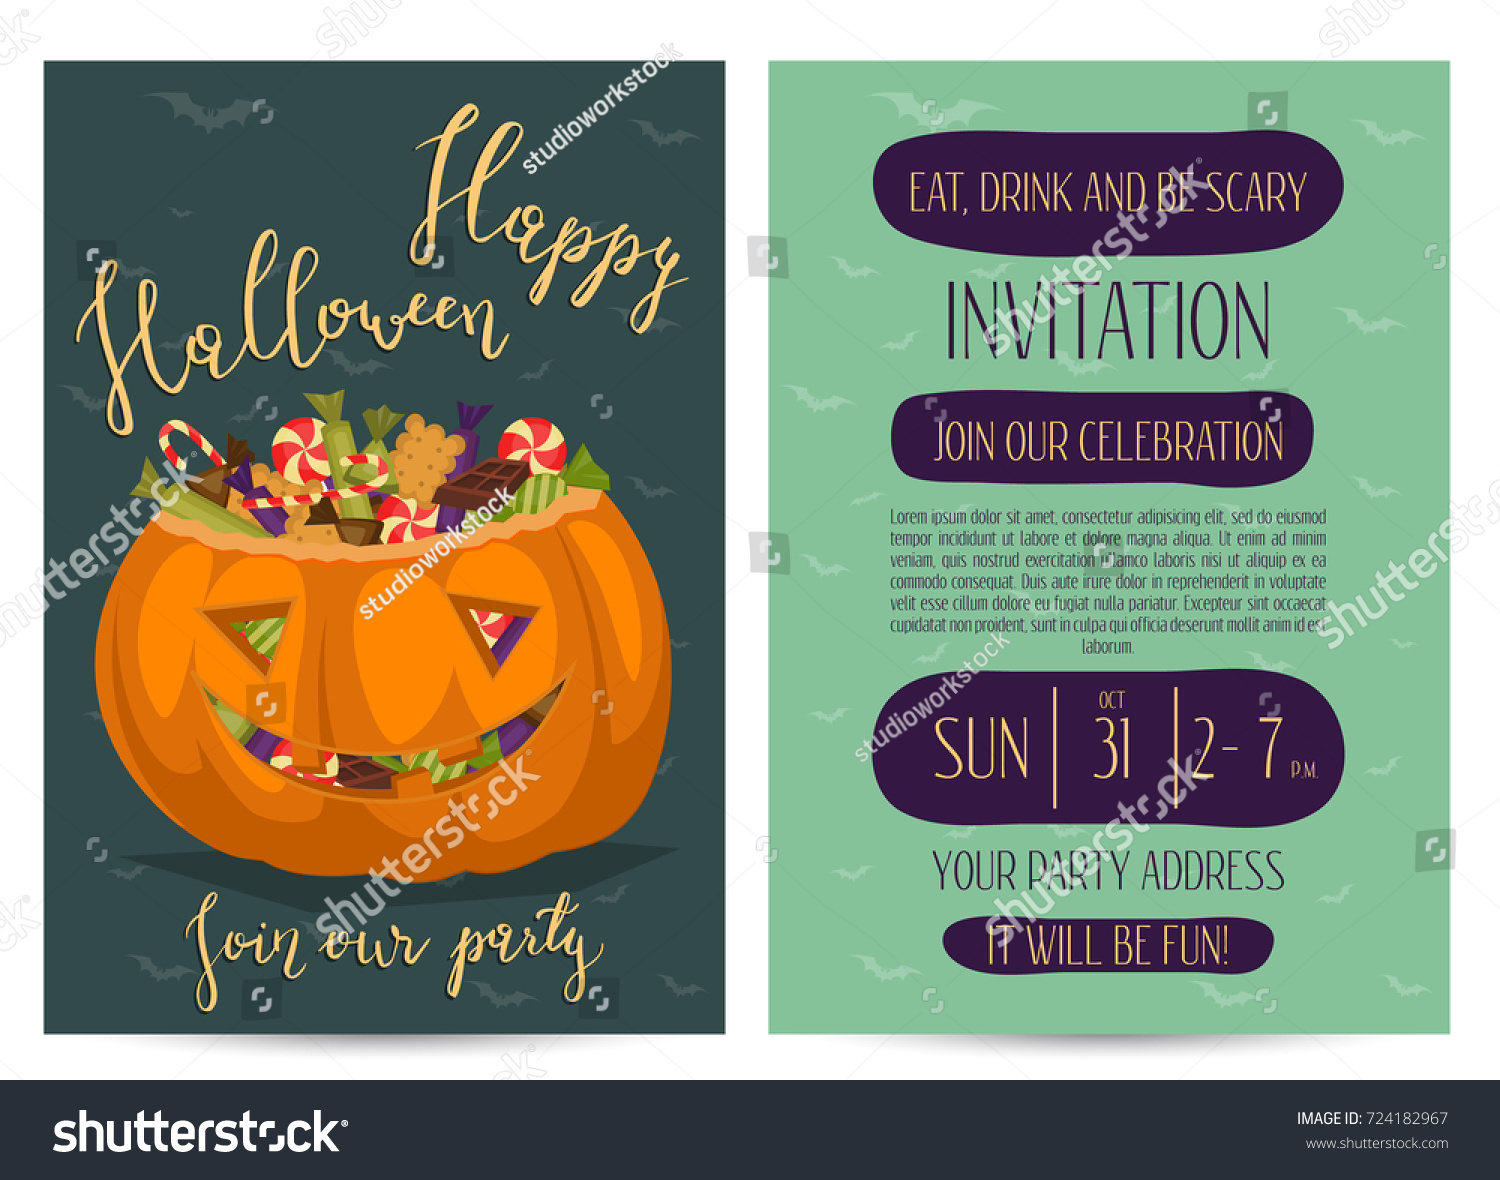 Vintage Halloween Party Invitations Scary Pumpkin Stock Vector ...